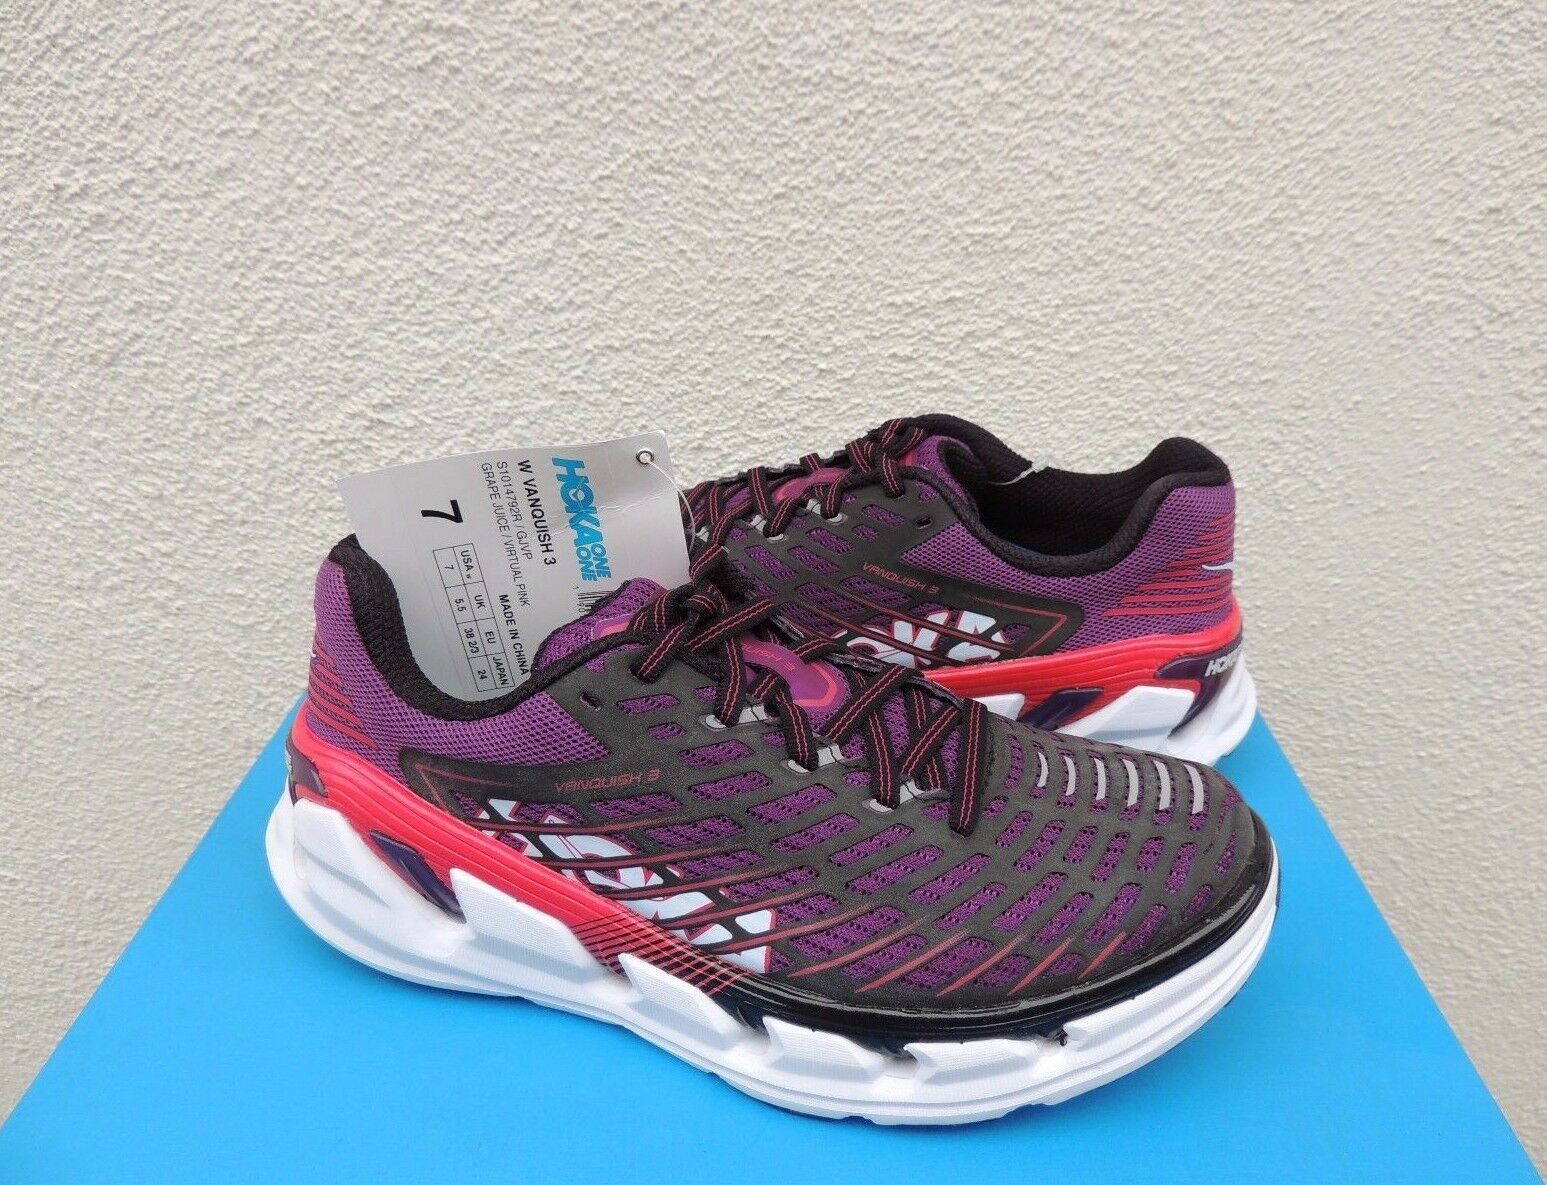 HOKA ONE ONE VANQUISH 3 GRAPE JUICE  PINK RUNNING SHOES, US 7  EUR 38 2 3 NWT